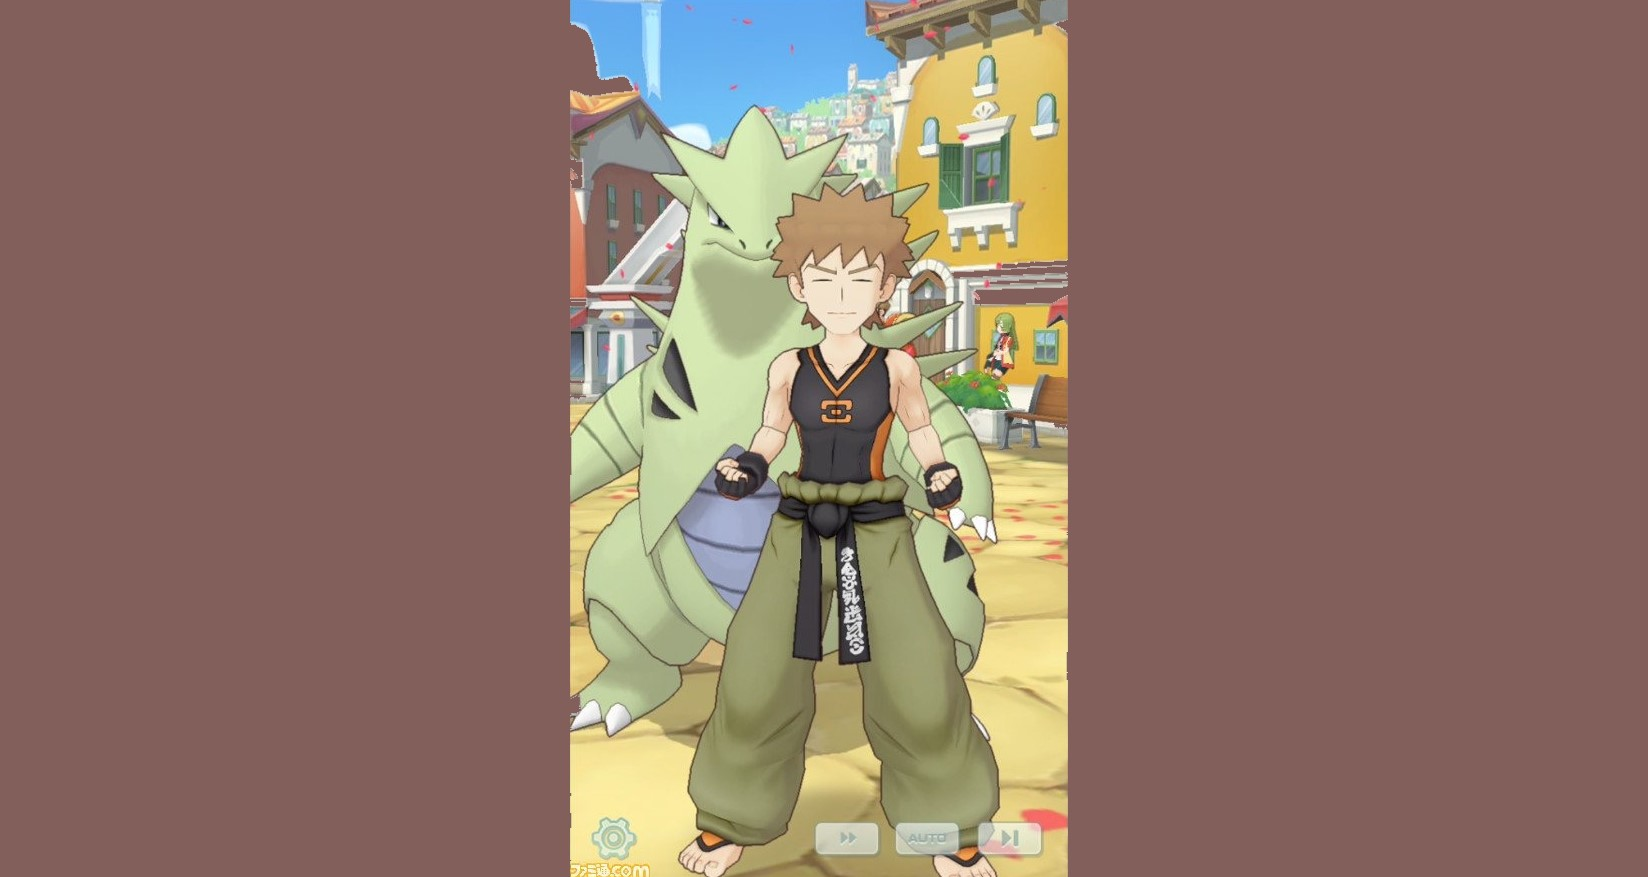 1618062468 930 70 Pokemon Masters Sygna Suits: How to Unlock Sygna Suits